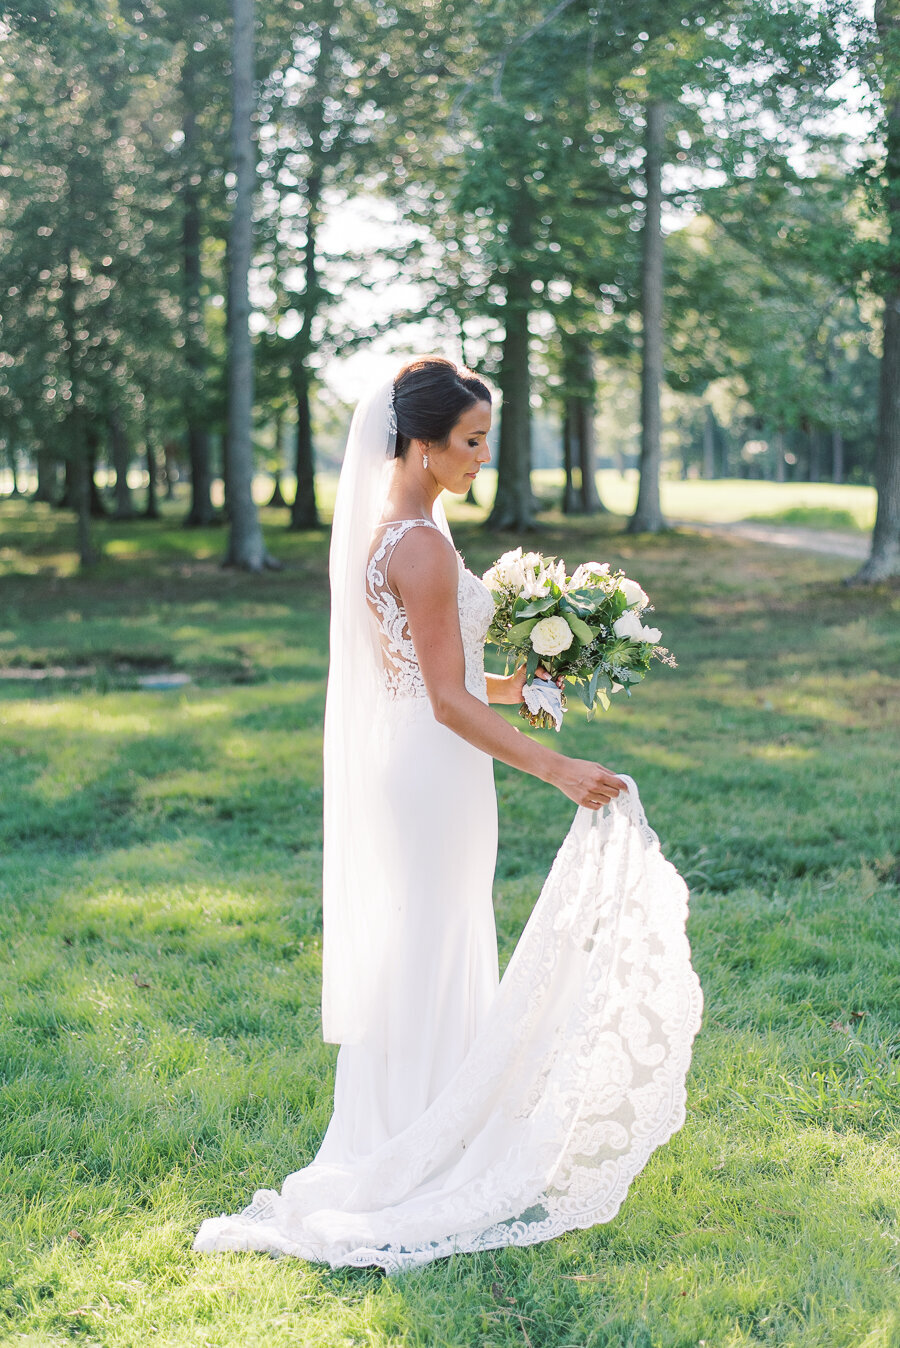 Prospect_Bay_Country_Club_Wedding_Maryland_Megan_Harris_Photography-41